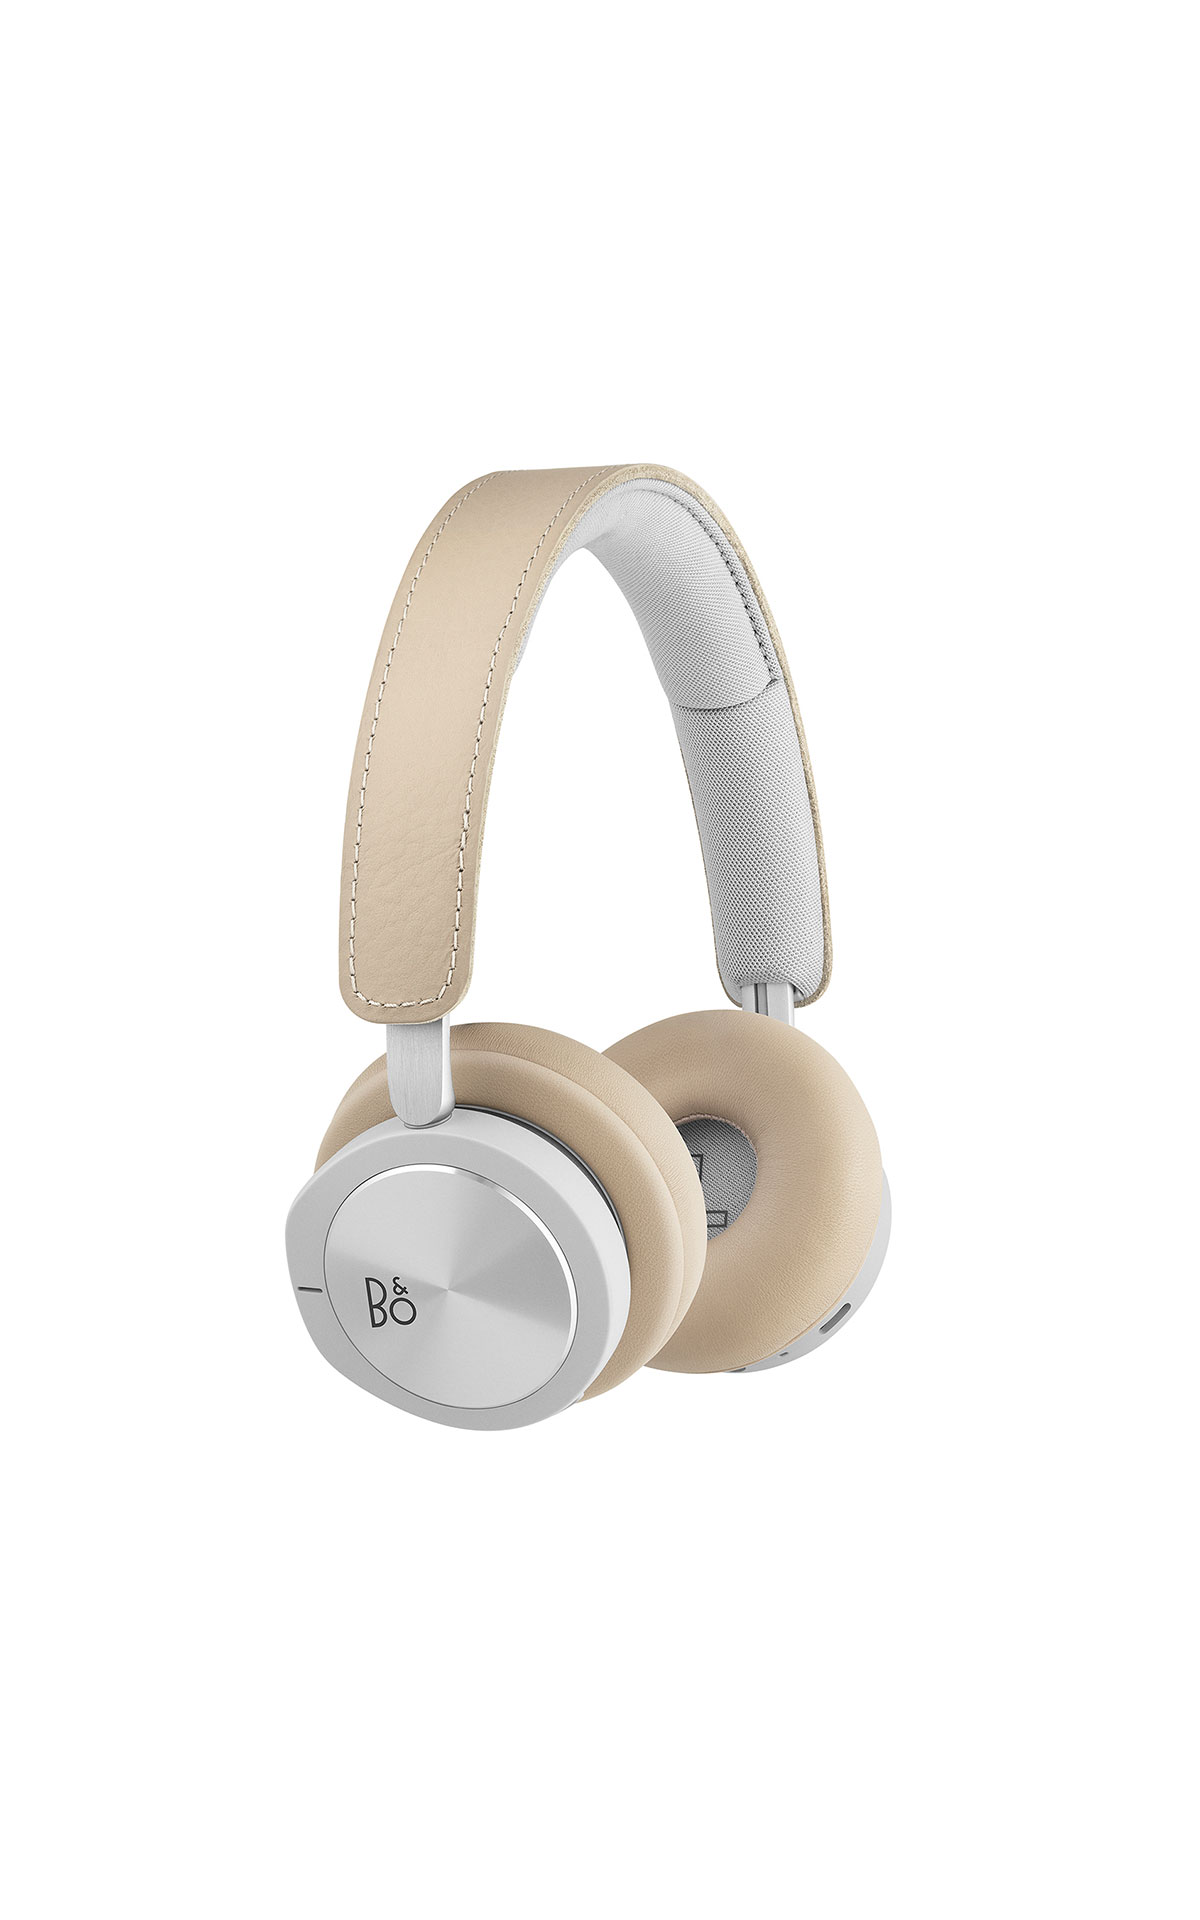 Bang & Olufsen Beoplay H8i natural from Bicester Village